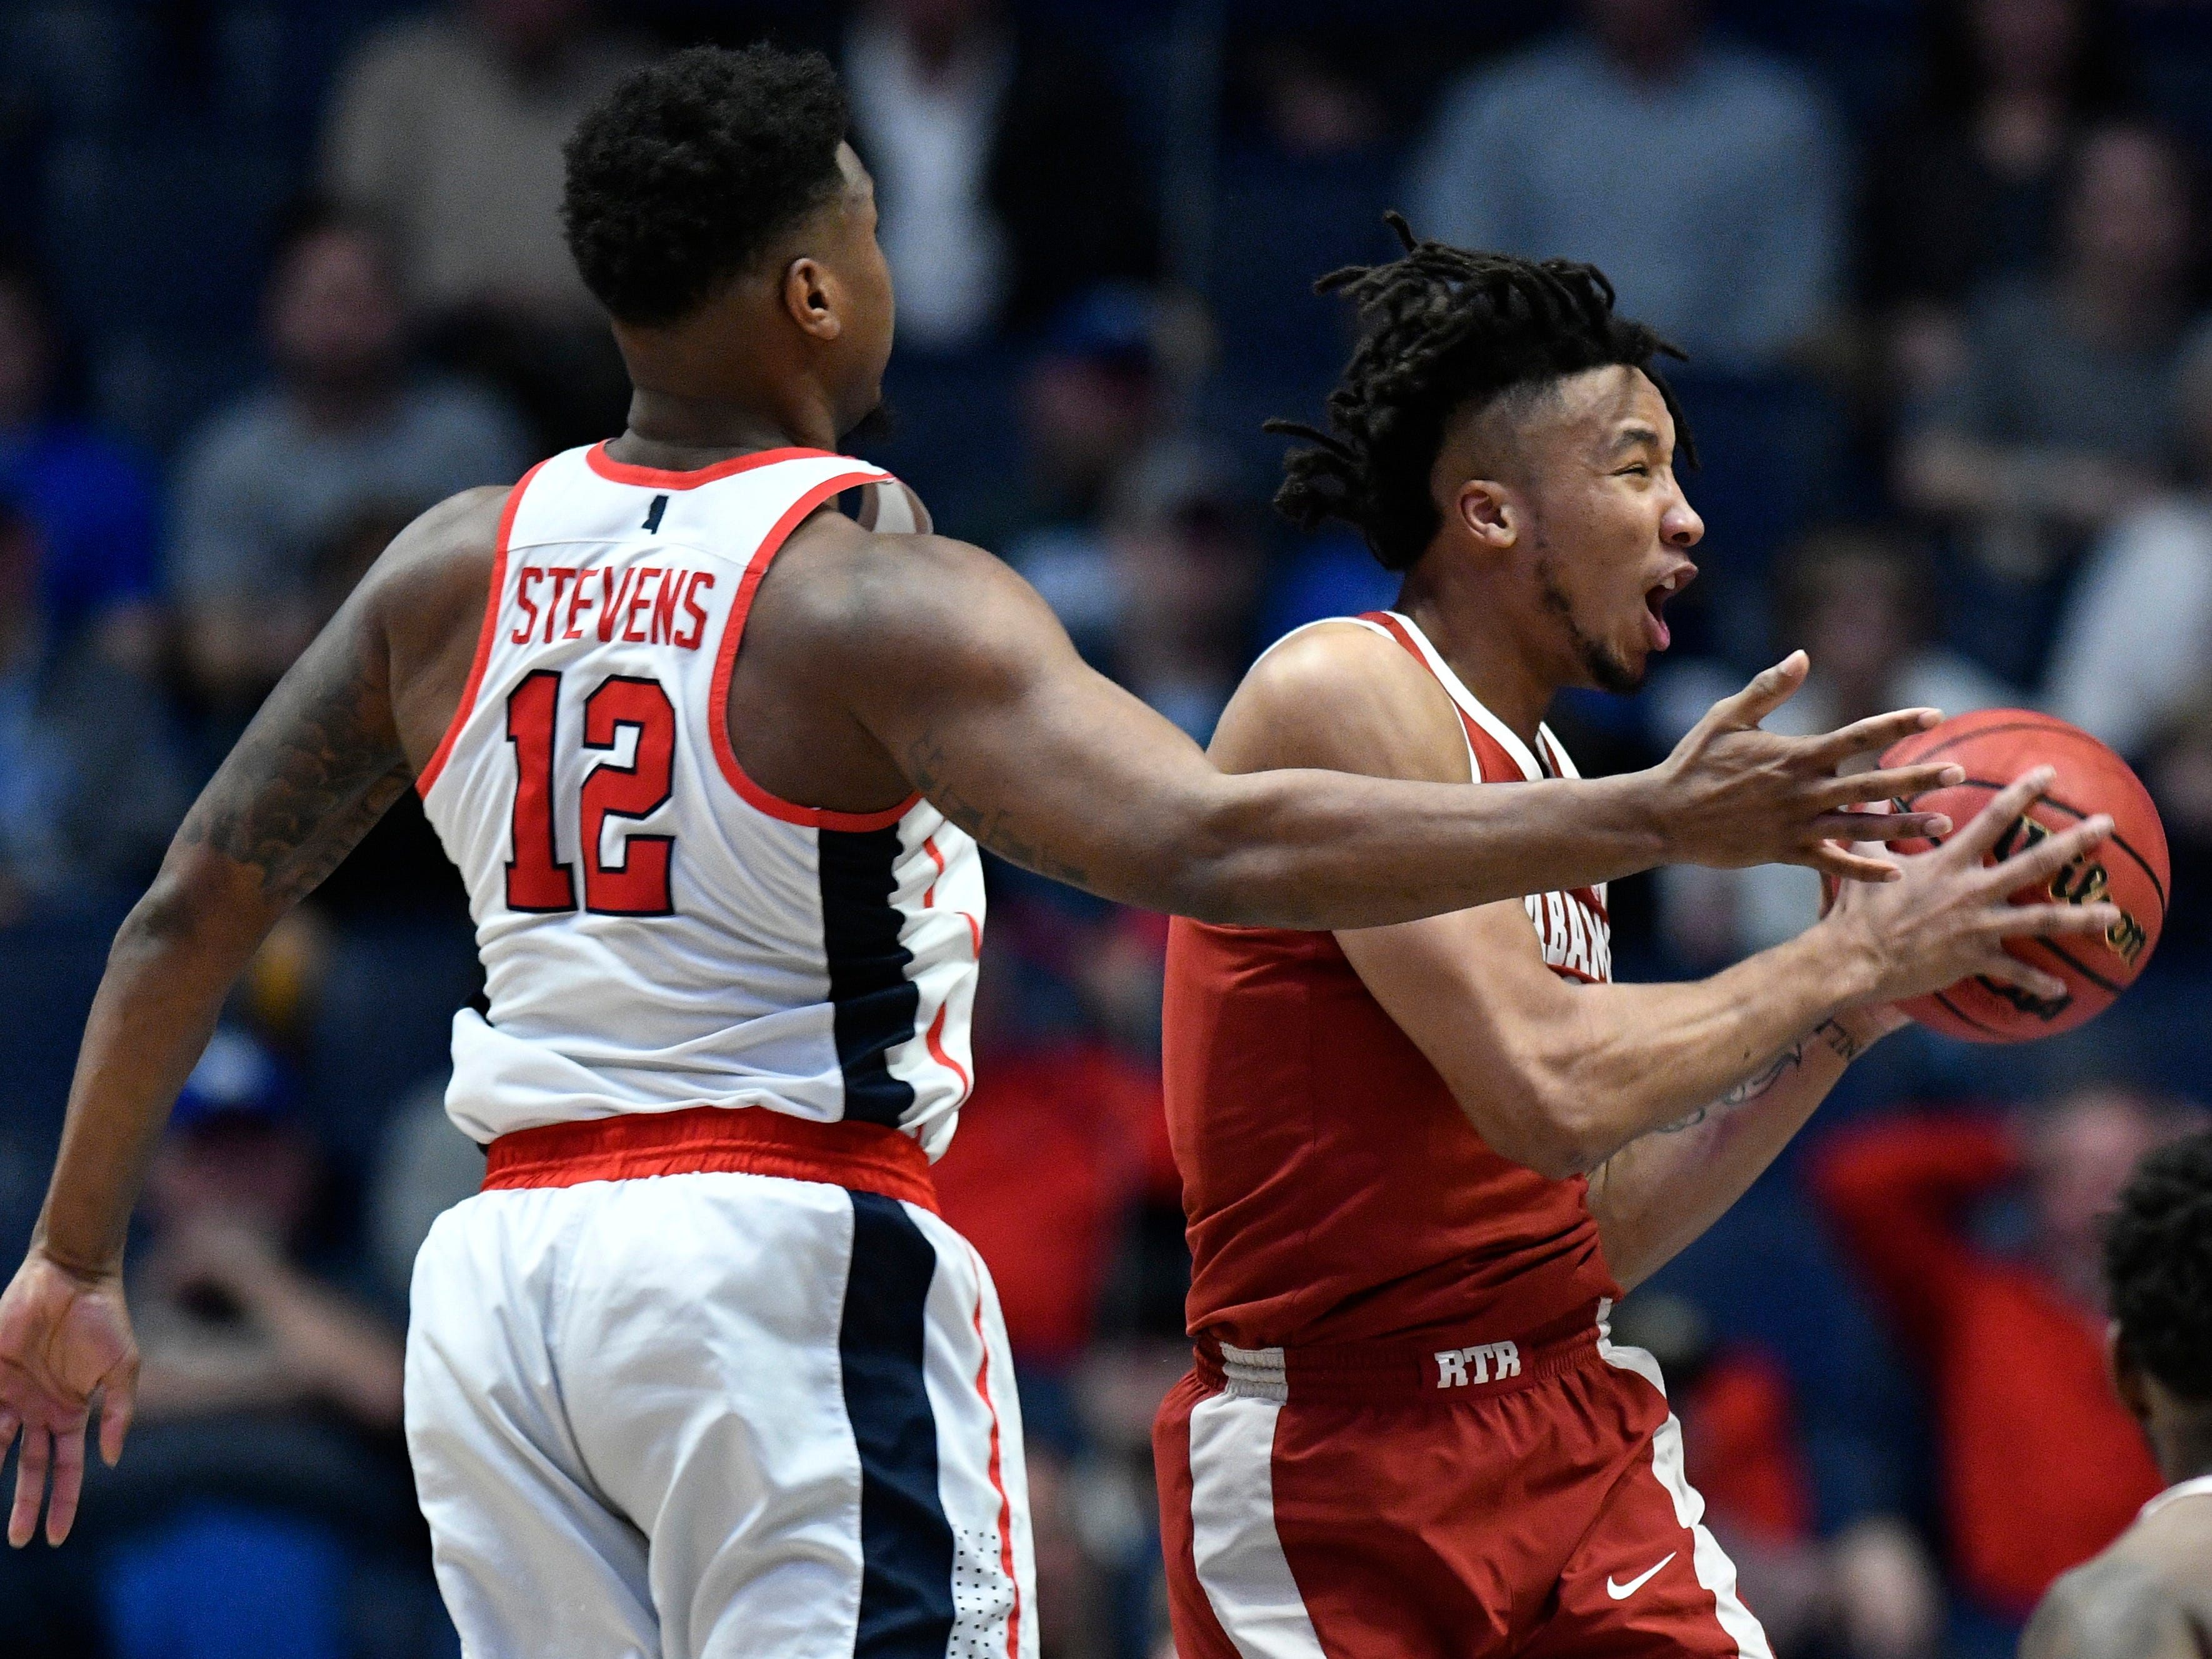 Alabama guard Dazon Ingram (12) takes it to the basket defended by Ole Miss forward Bruce Stevens (12) during the second half of the SEC Men's Basketball Tournament game at Bridgestone Arena in Nashville, Tenn., Thursday, March 14, 2019.